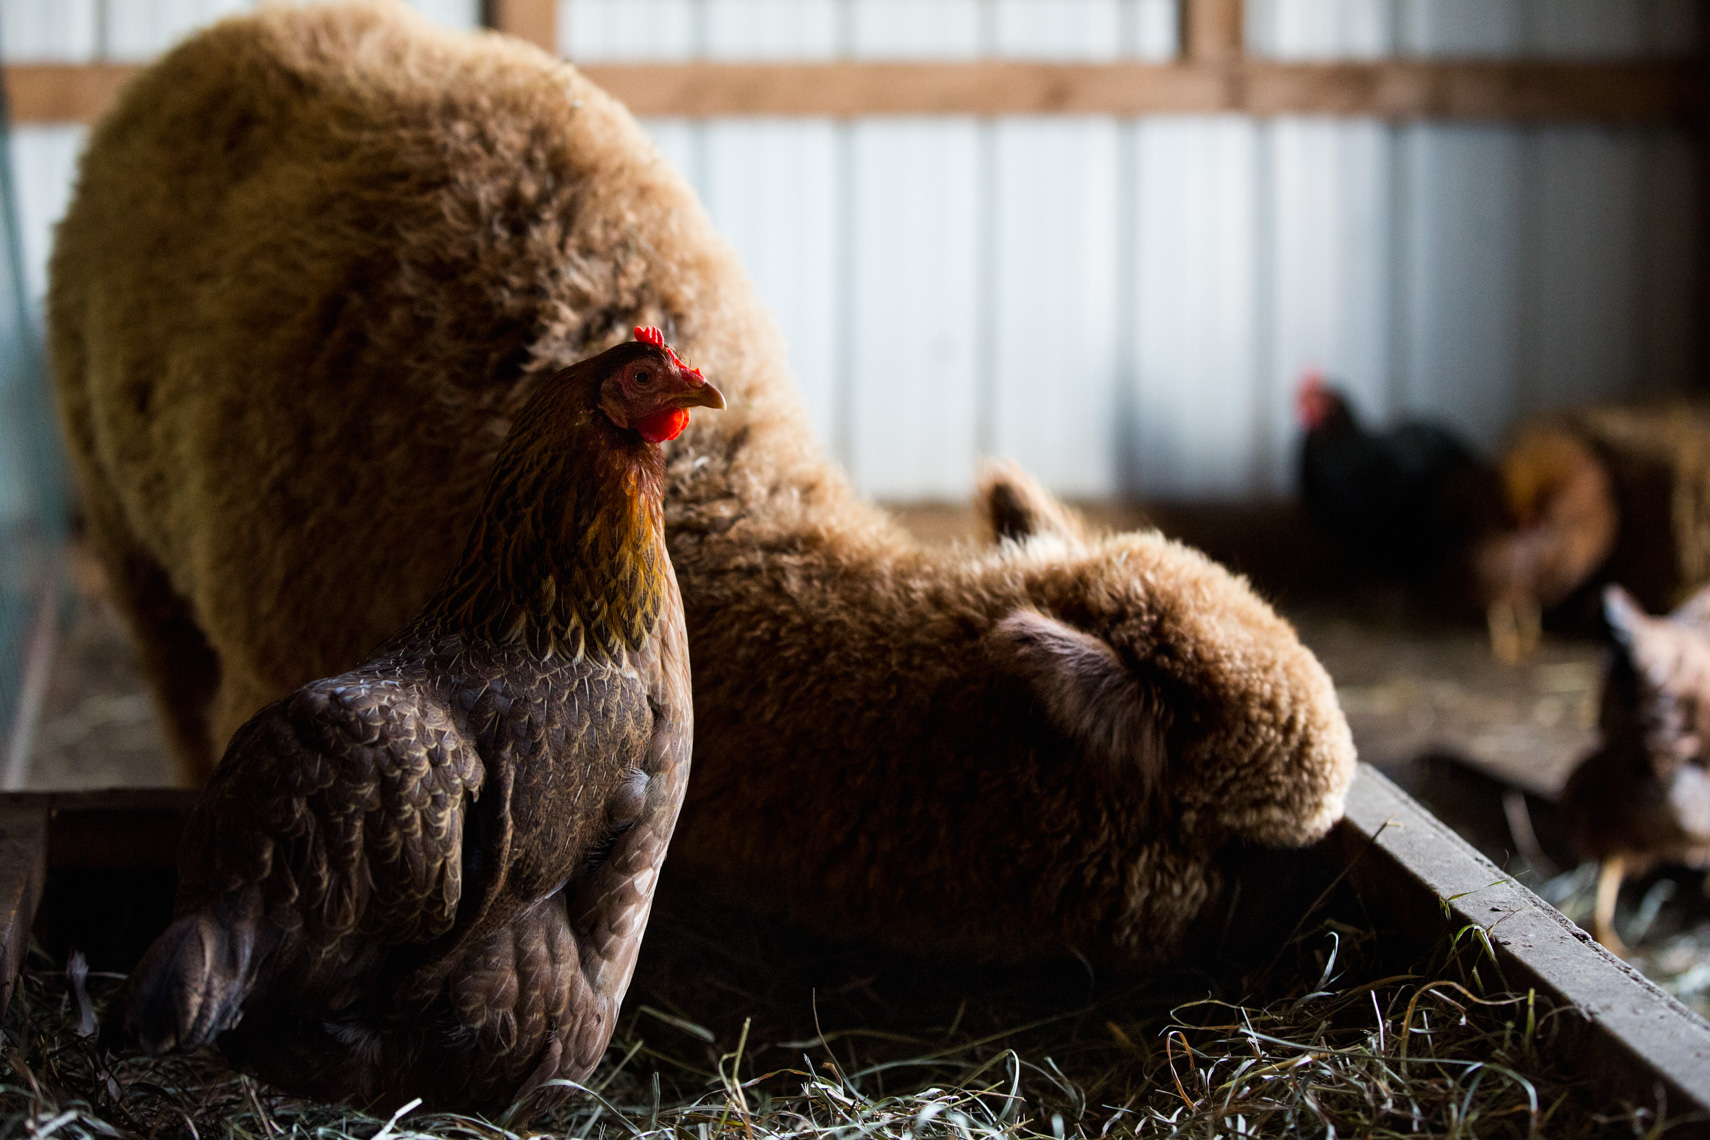 Chicken and Alpaca in a barn